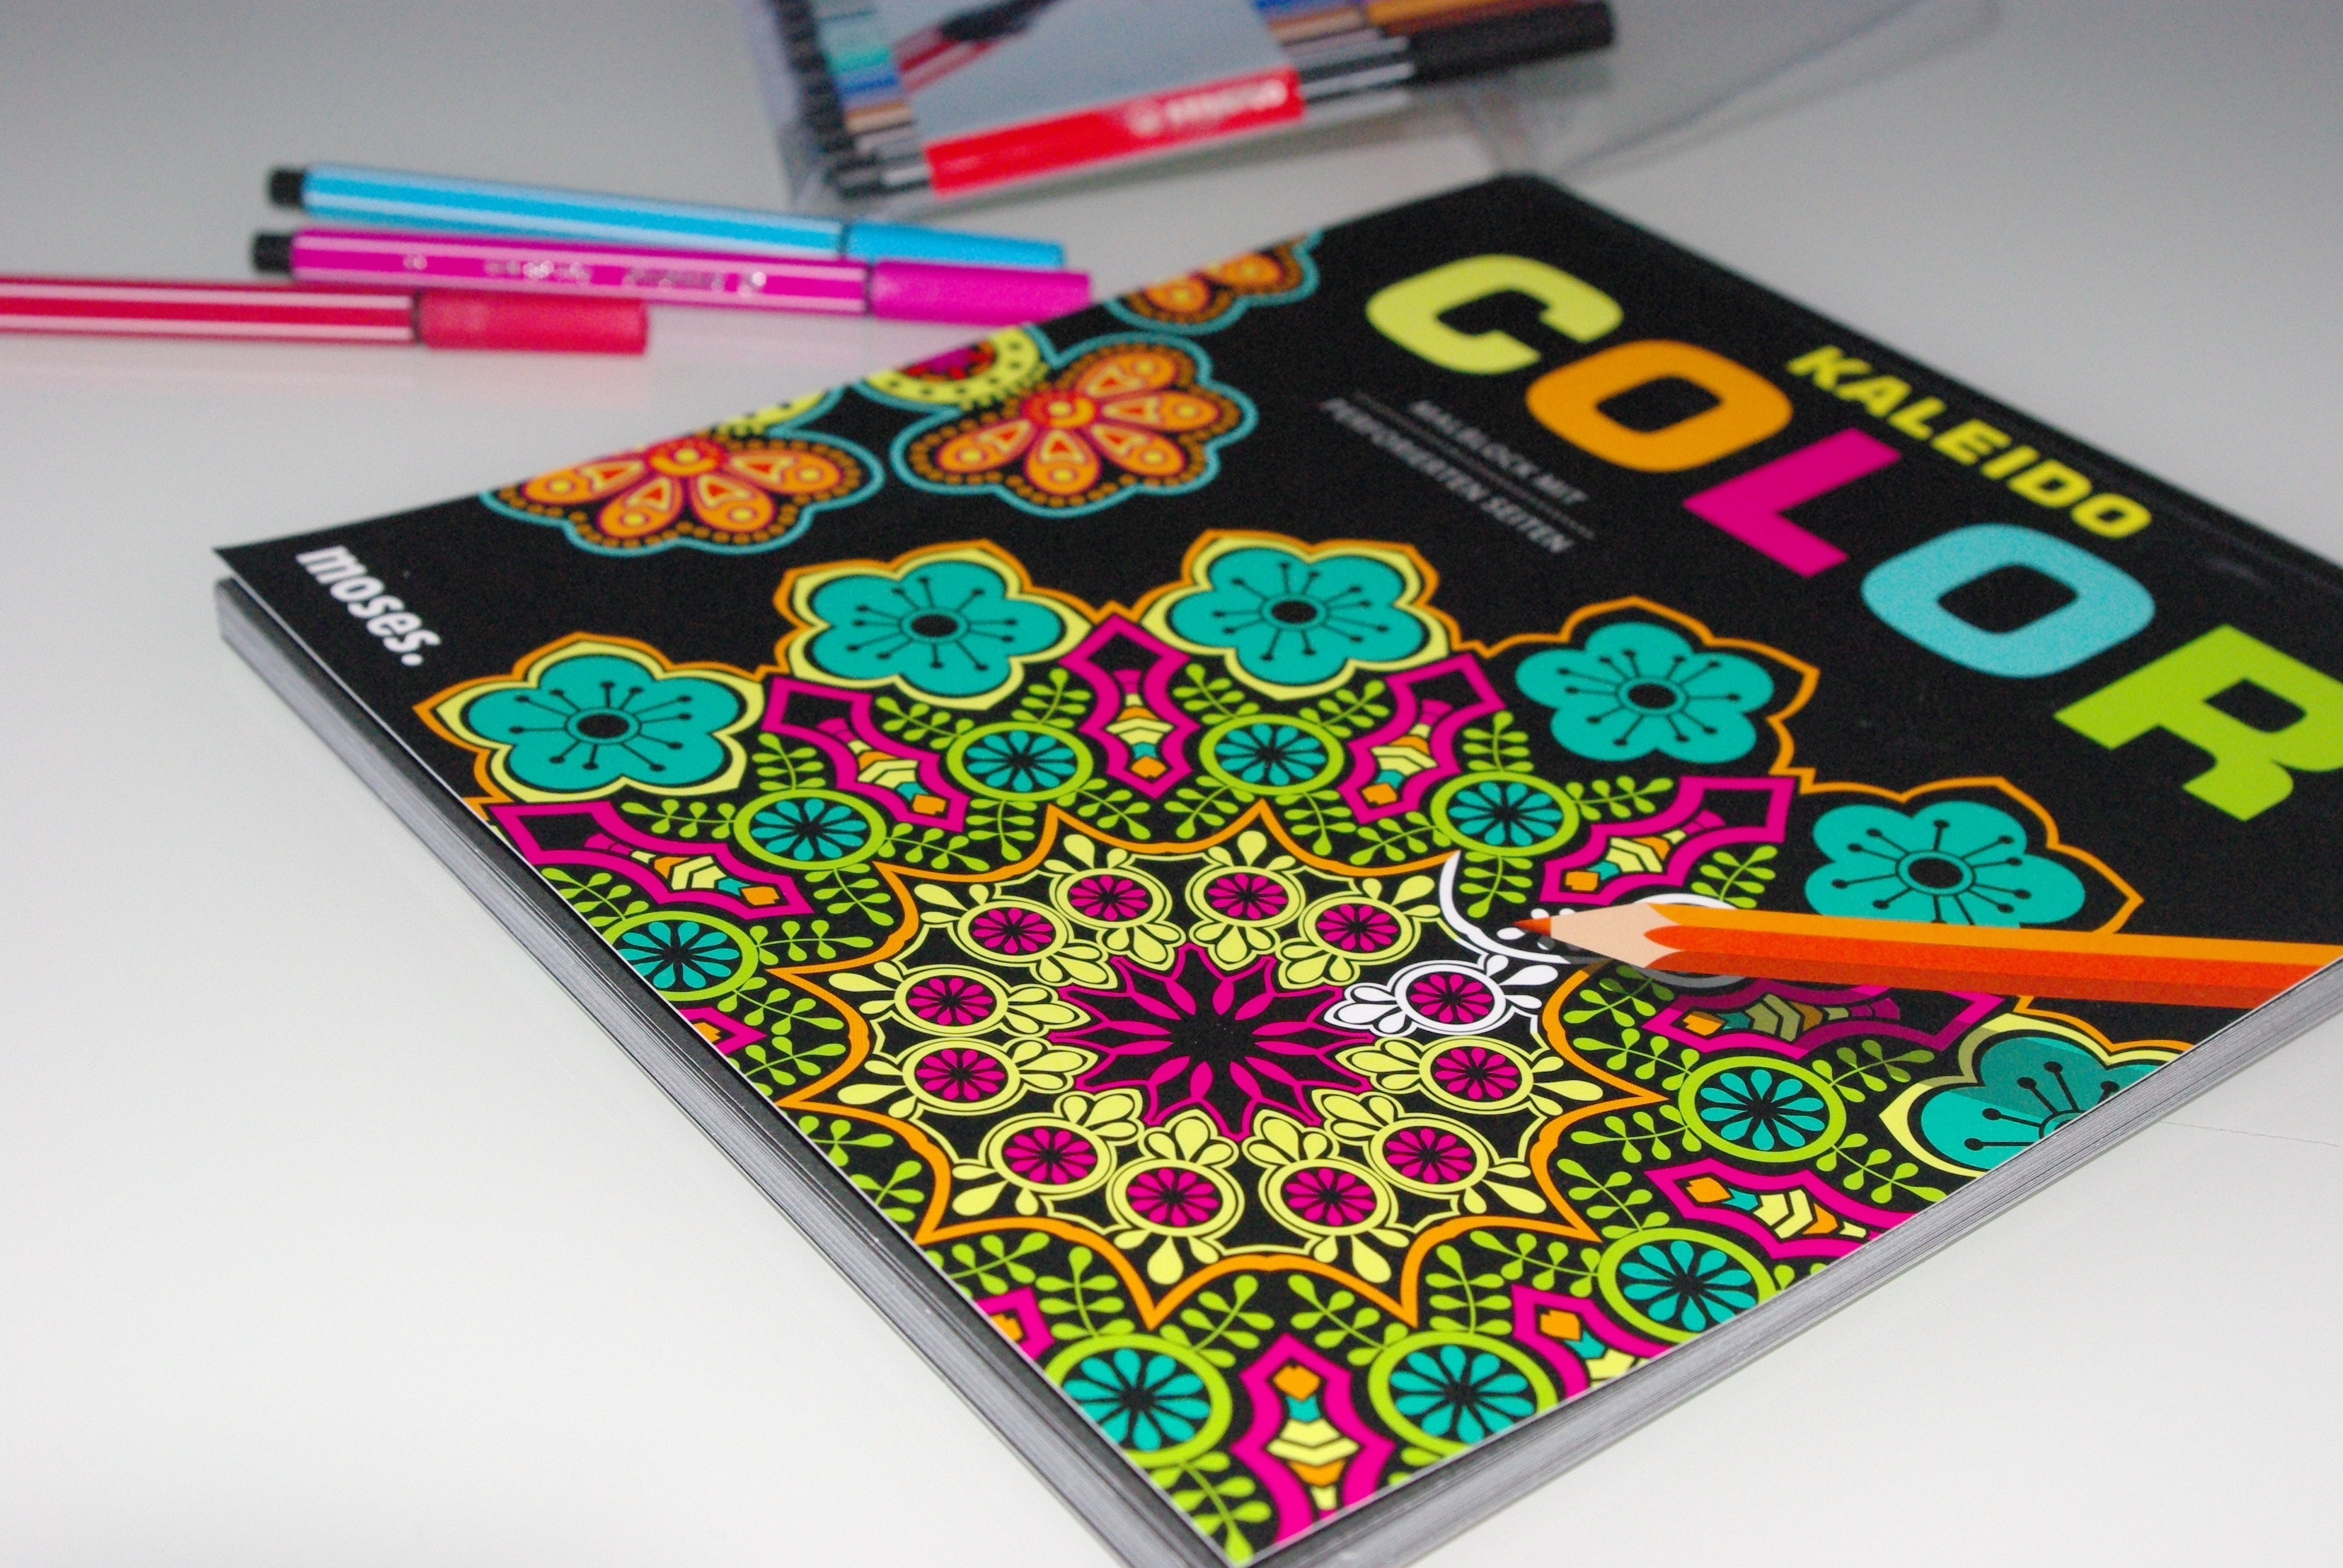 Coloriage De Vrai Fee.Le Coloriage Pour Adultes La Fee Biscotte